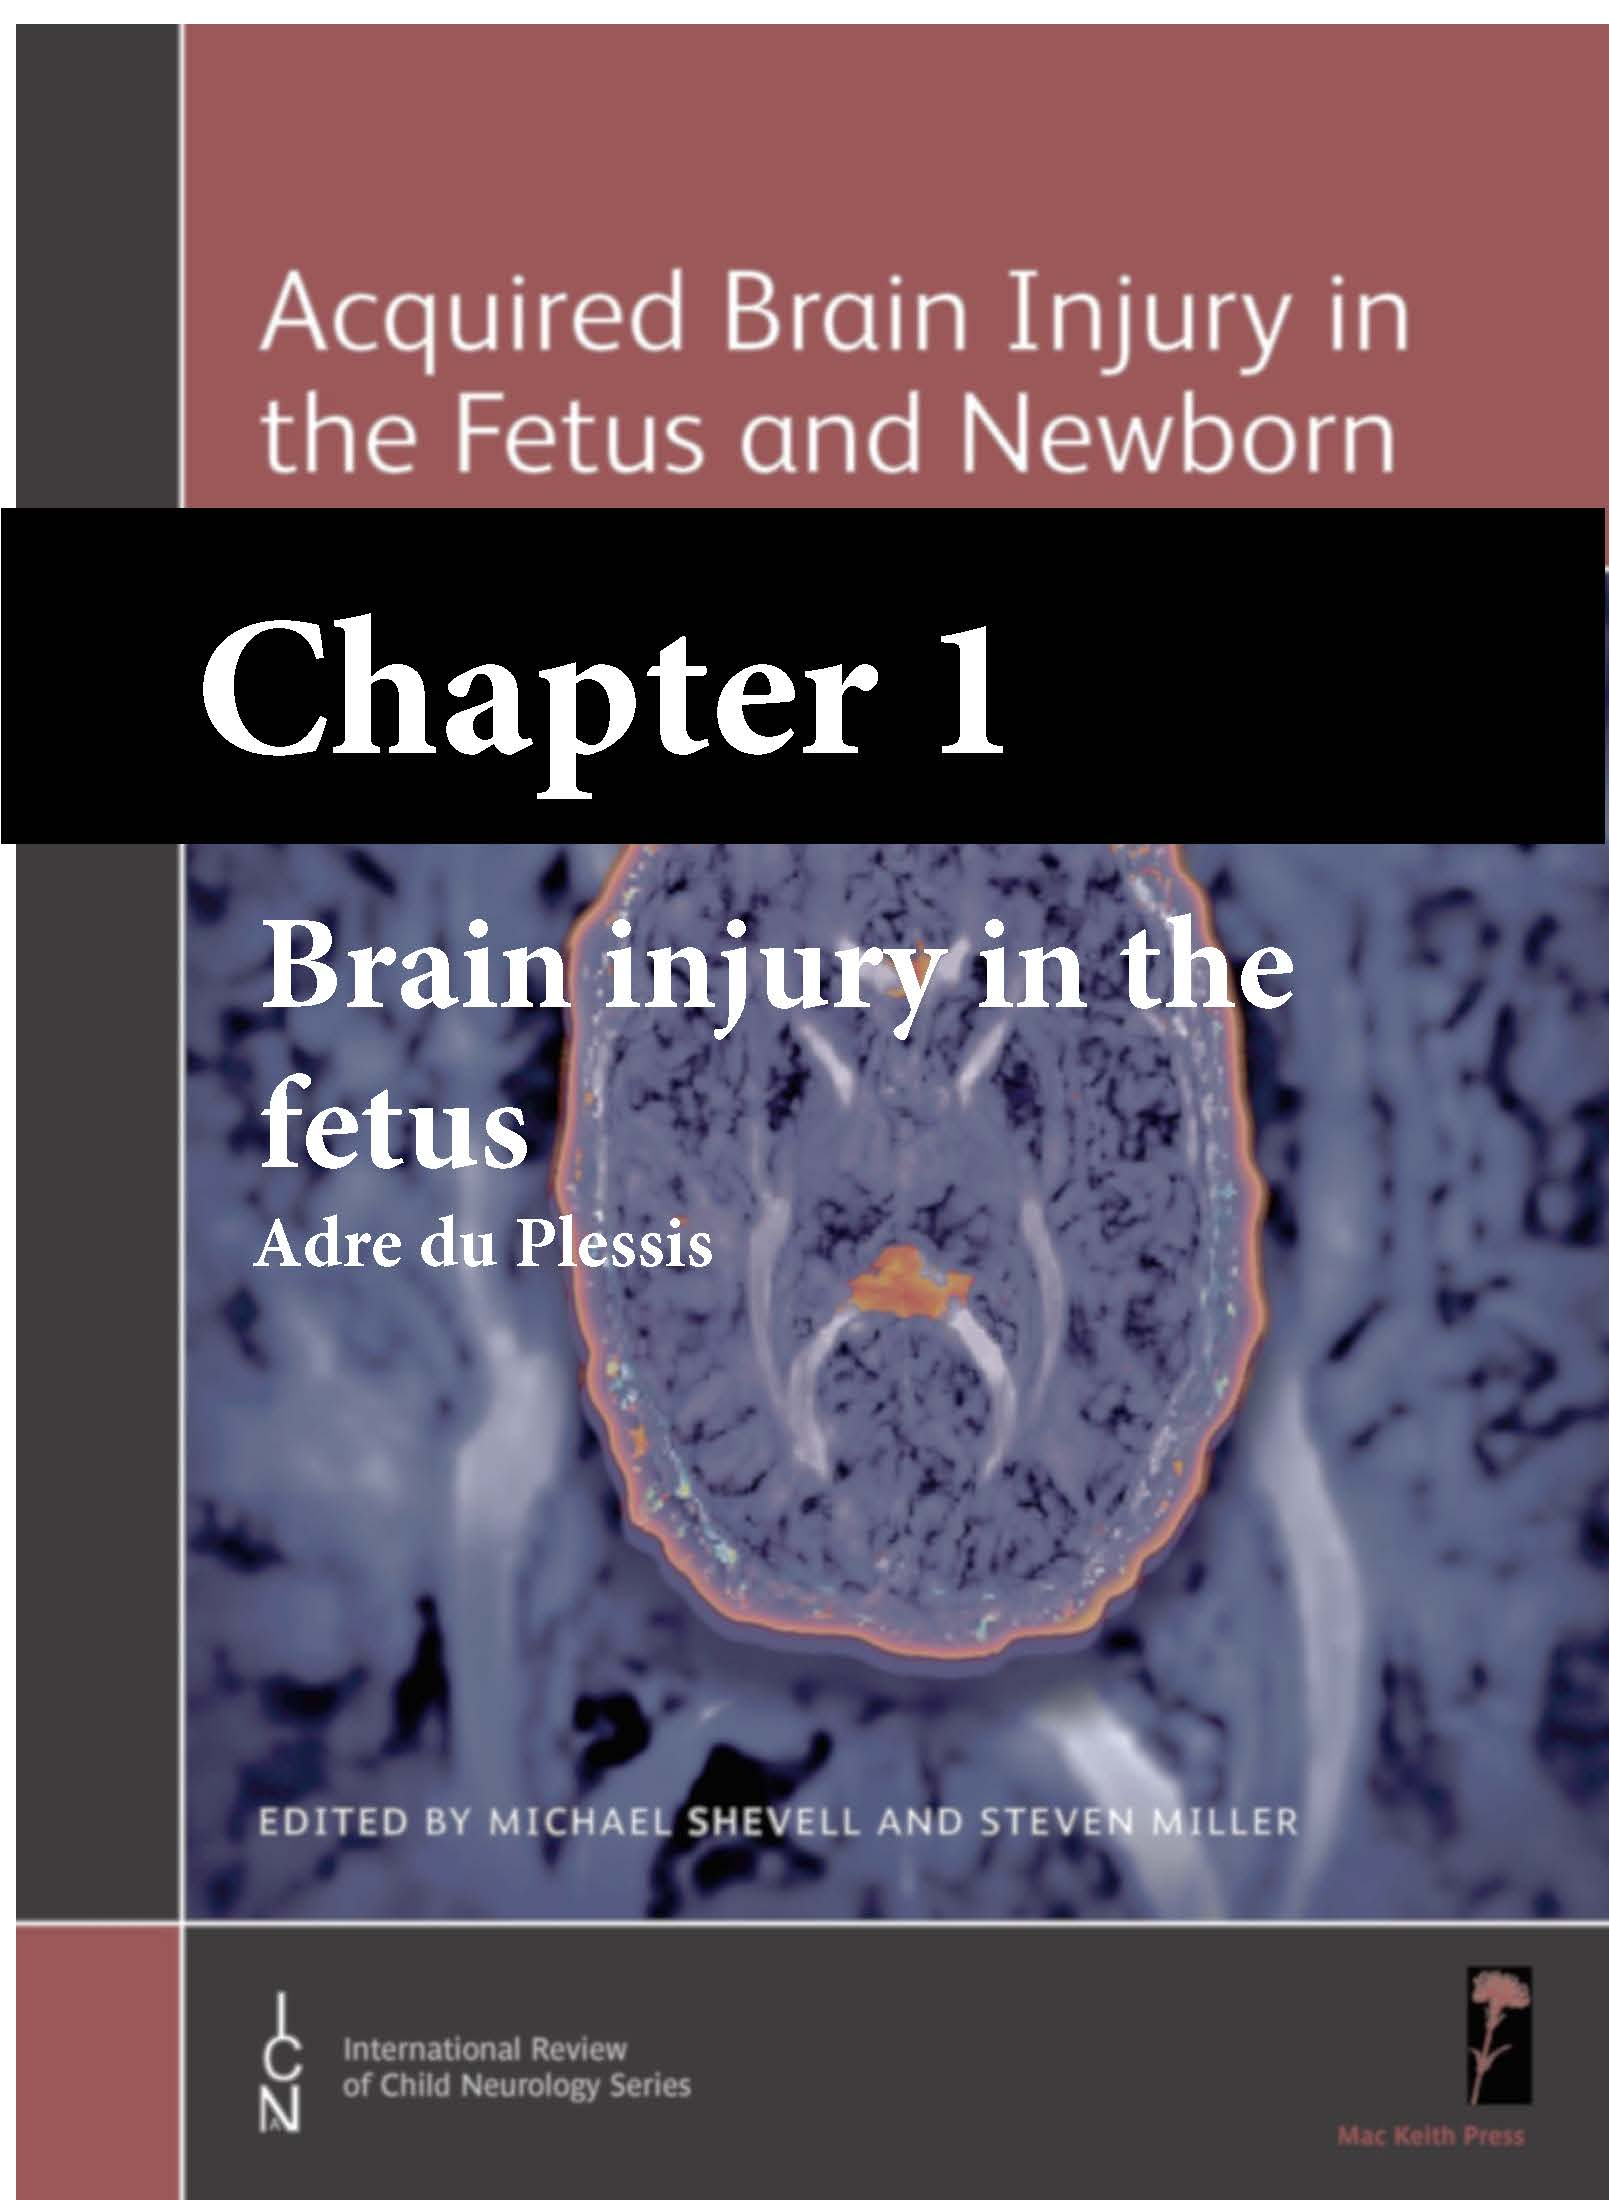 Acquired Brain Injury in the Fetus & Newborn, Shevell & Miller, Chapter 1 cover